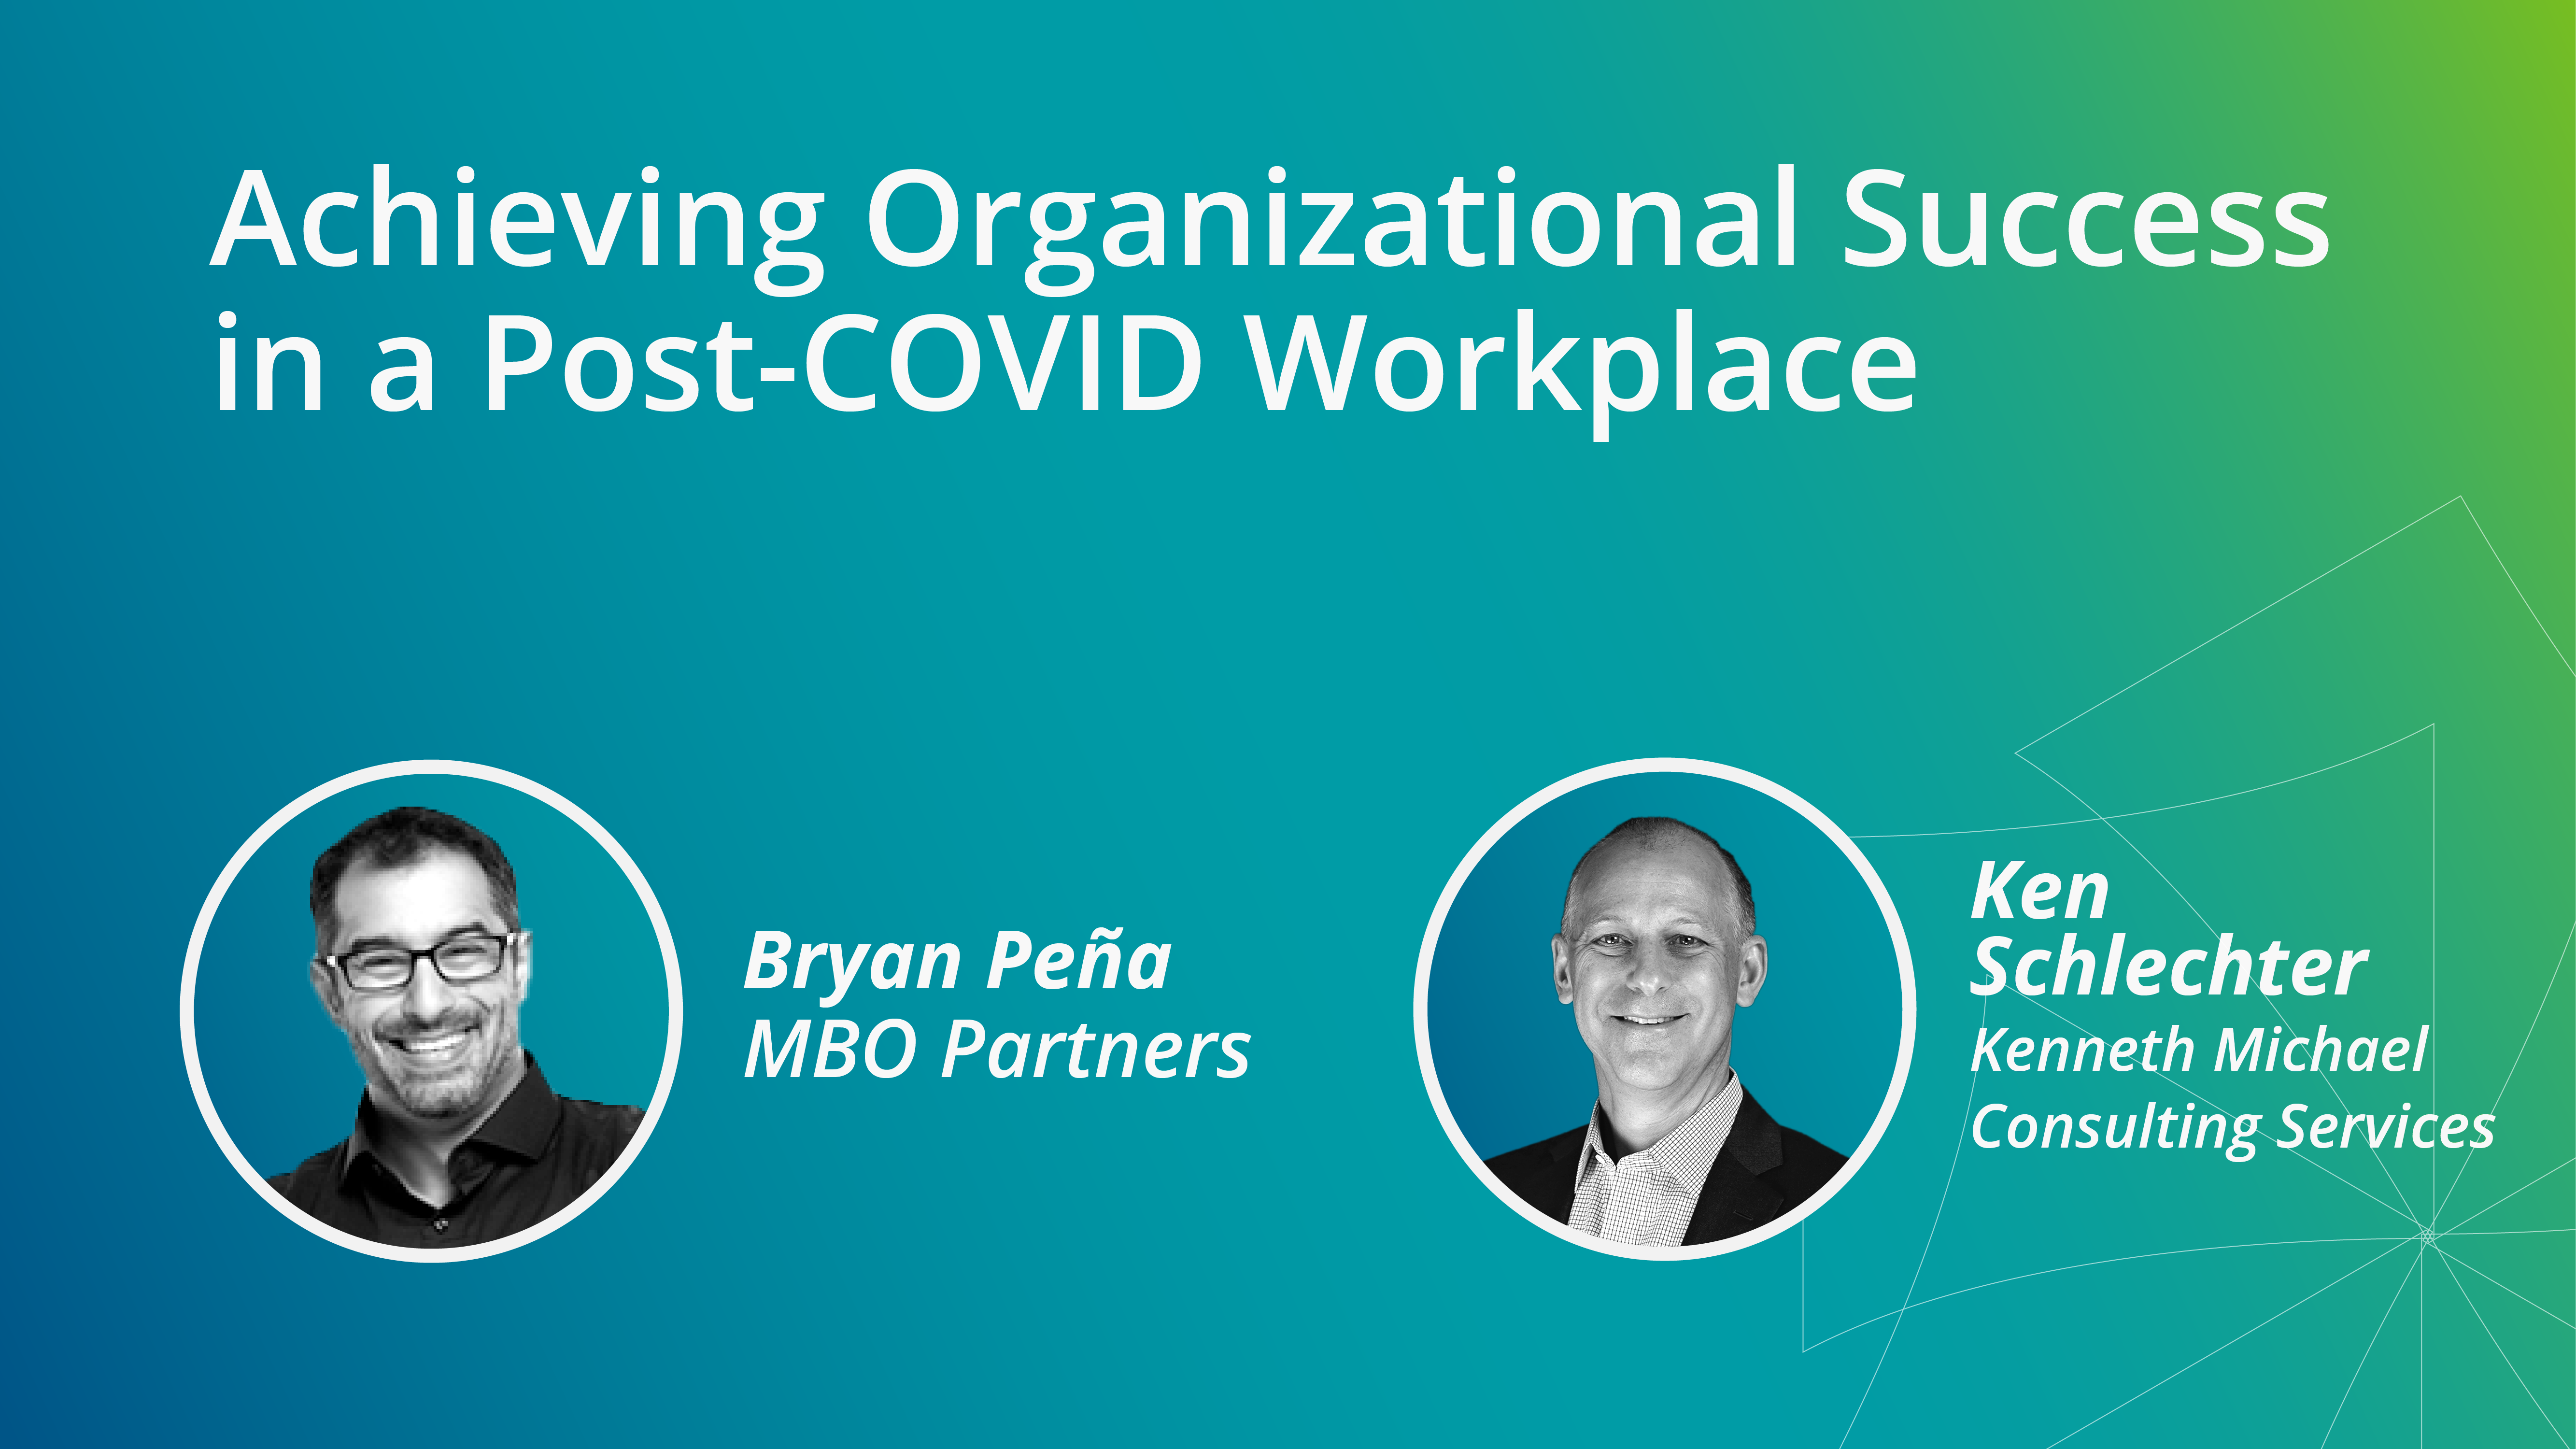 Achieving Organizational Success in a Post-COVID Workplace